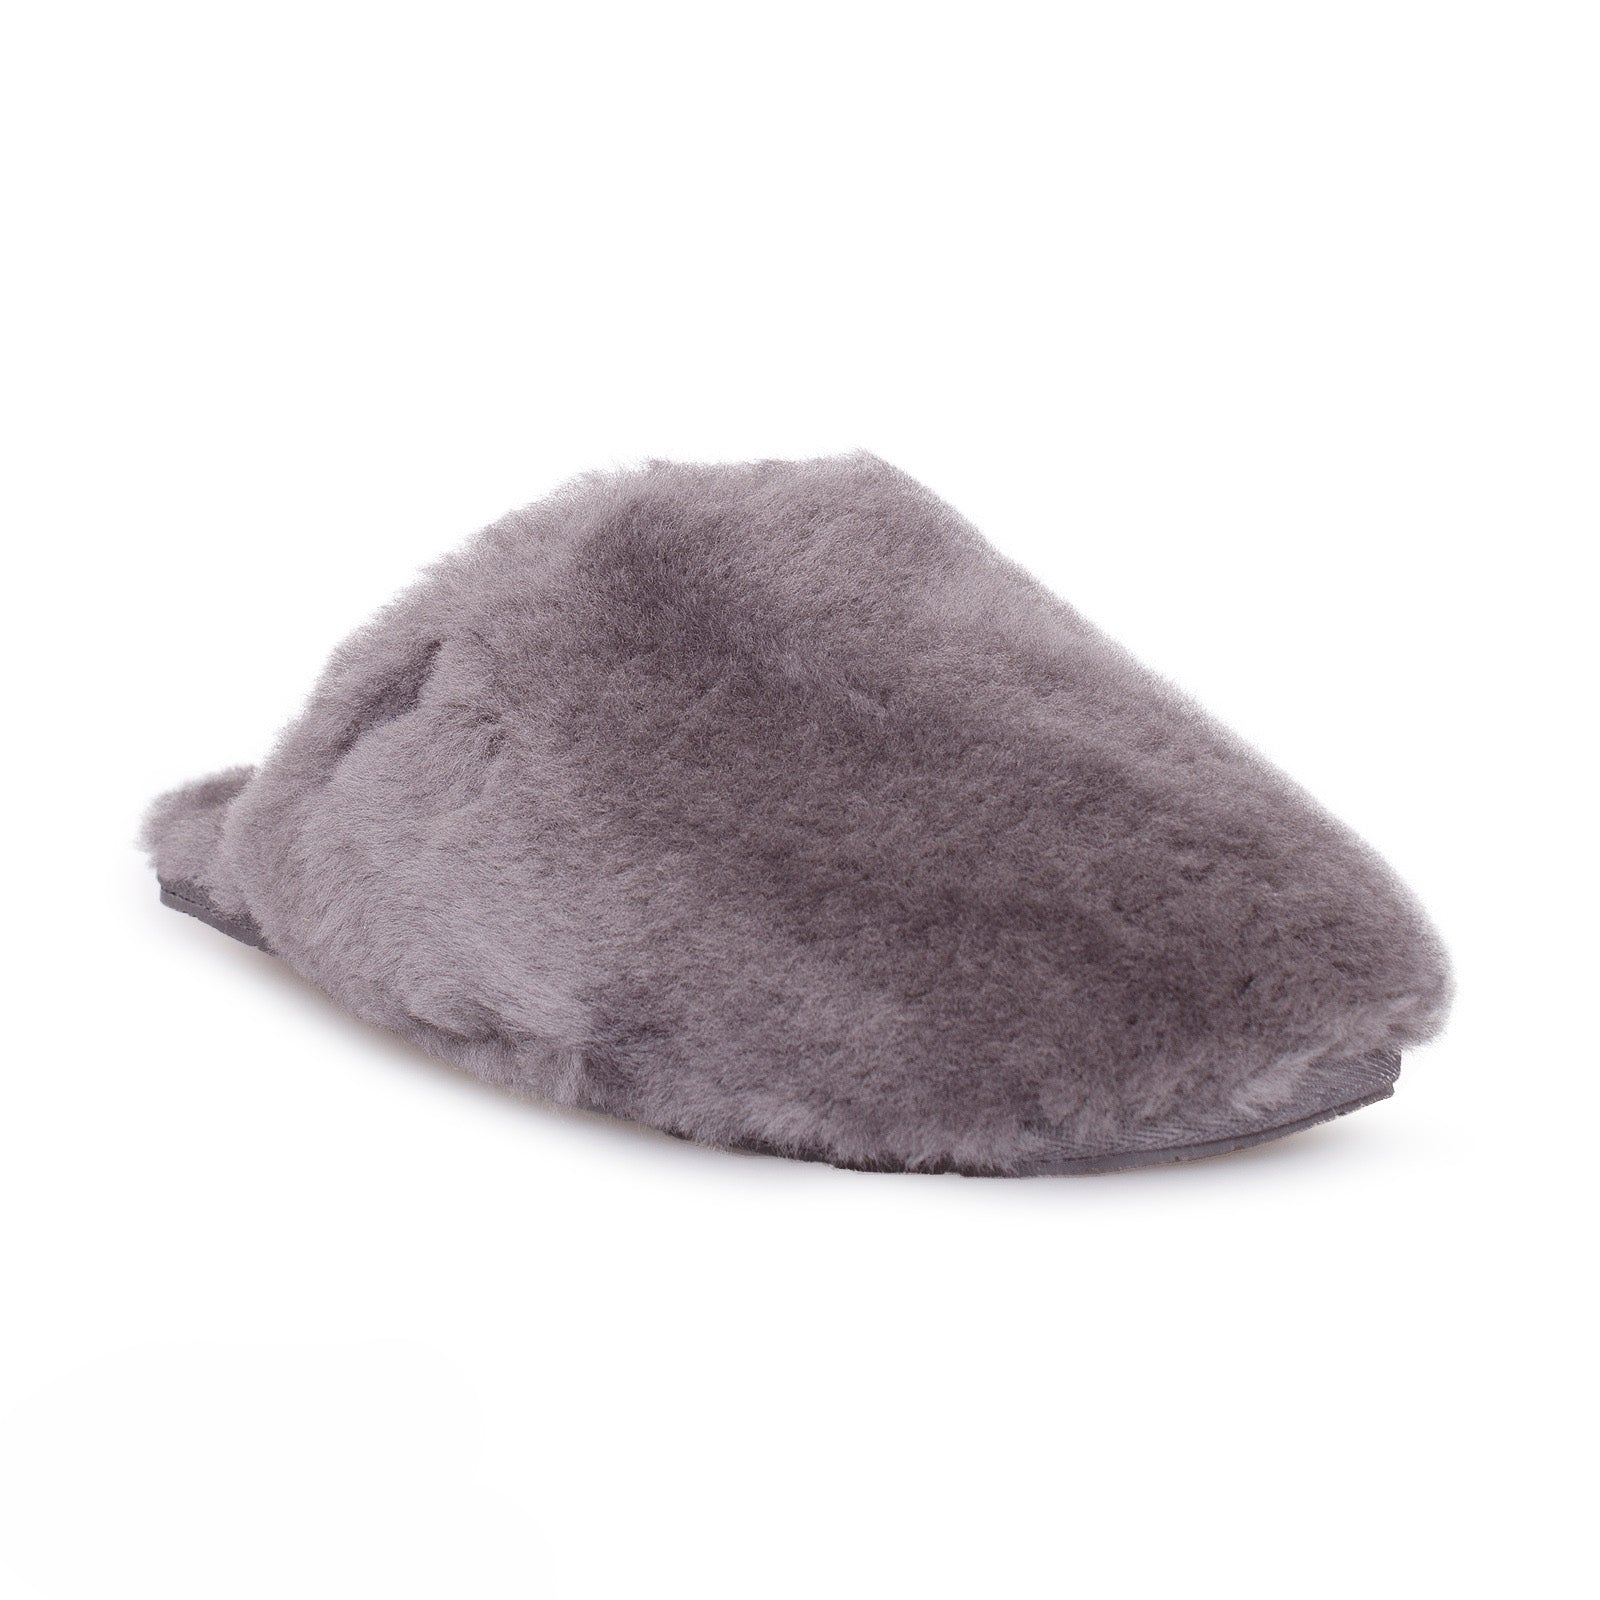 7c29eba1b3e UGG Fluff Clog Grey Slippers - Women's